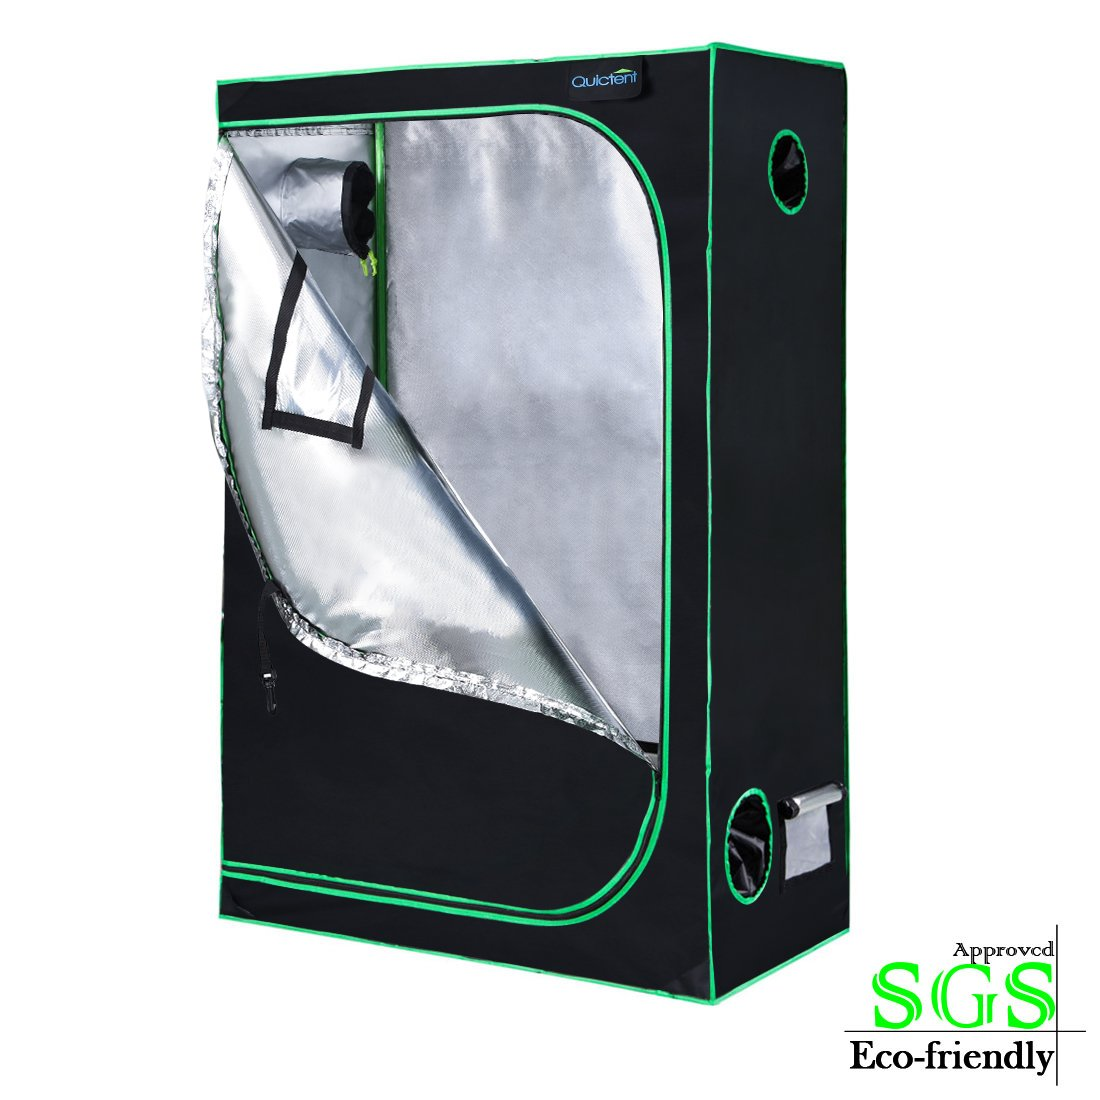 Quictent SGS Approved Eco-friendly 48''x24''x72'' Reflective Mylar Hydroponic Grow Tent with Heavy Duty Anti-burst Zipper and waterproof Floor Tray for Indoor Plant Growing 4'x2'